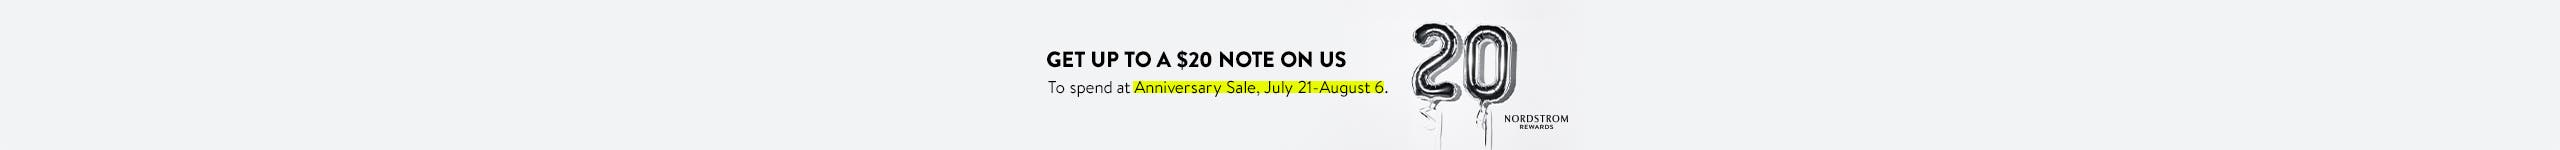 Nordstrom Rewards: get up to a $20 Note on us to spend at Anniversary Sale, July 21-August 6.